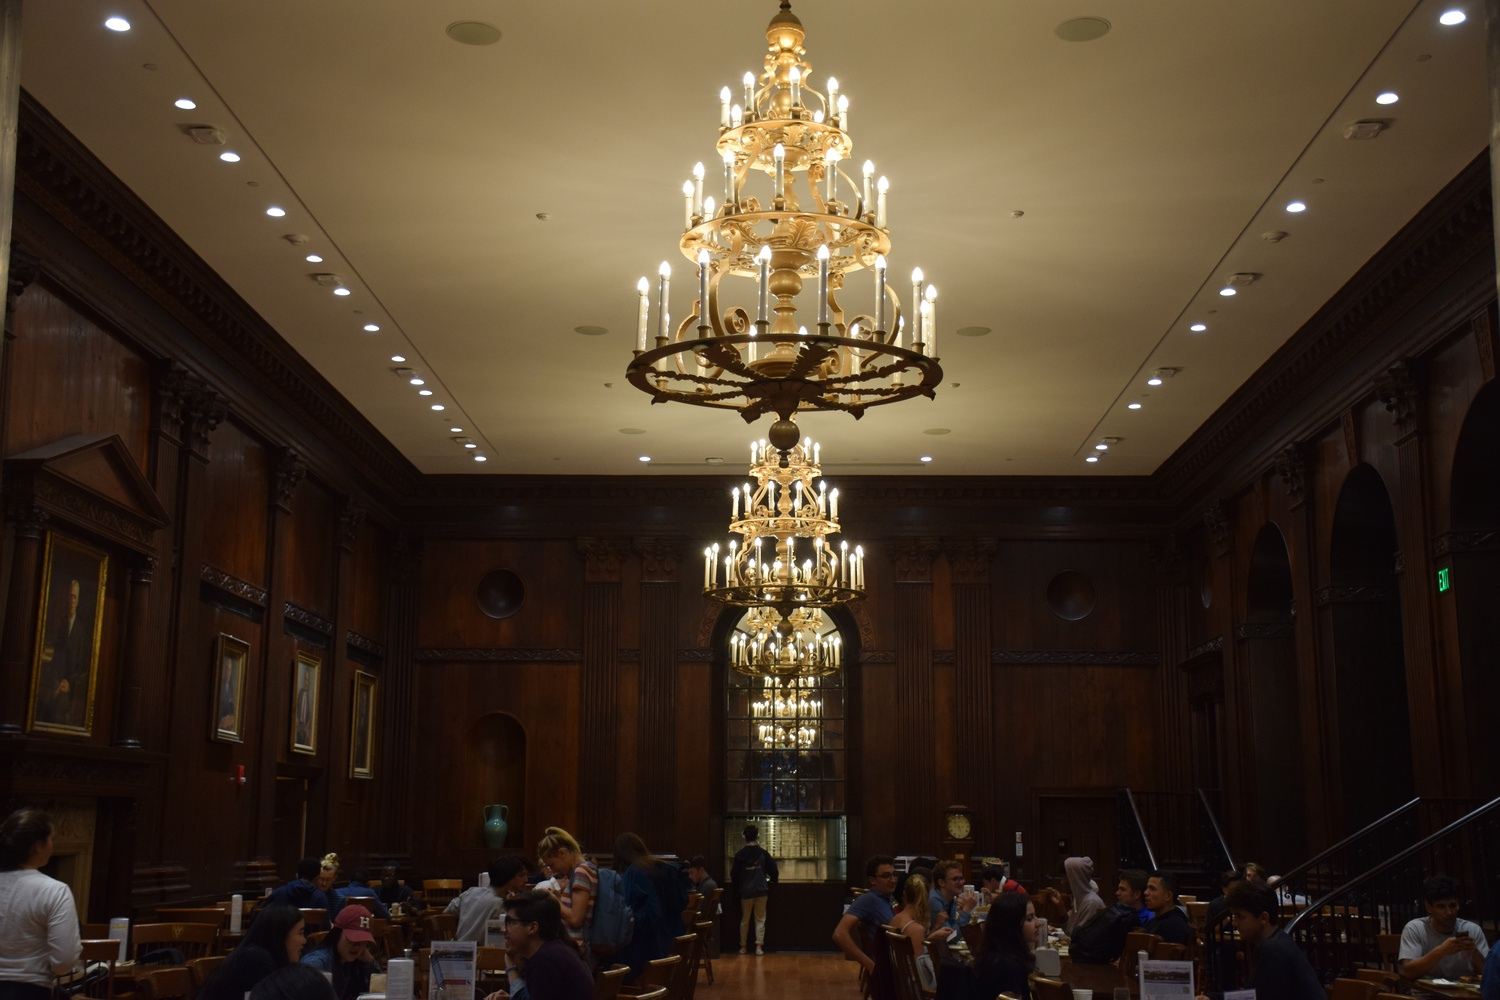 Harvard University Dining Services is changing its lunch hours to accommodate the new FAS schedule.